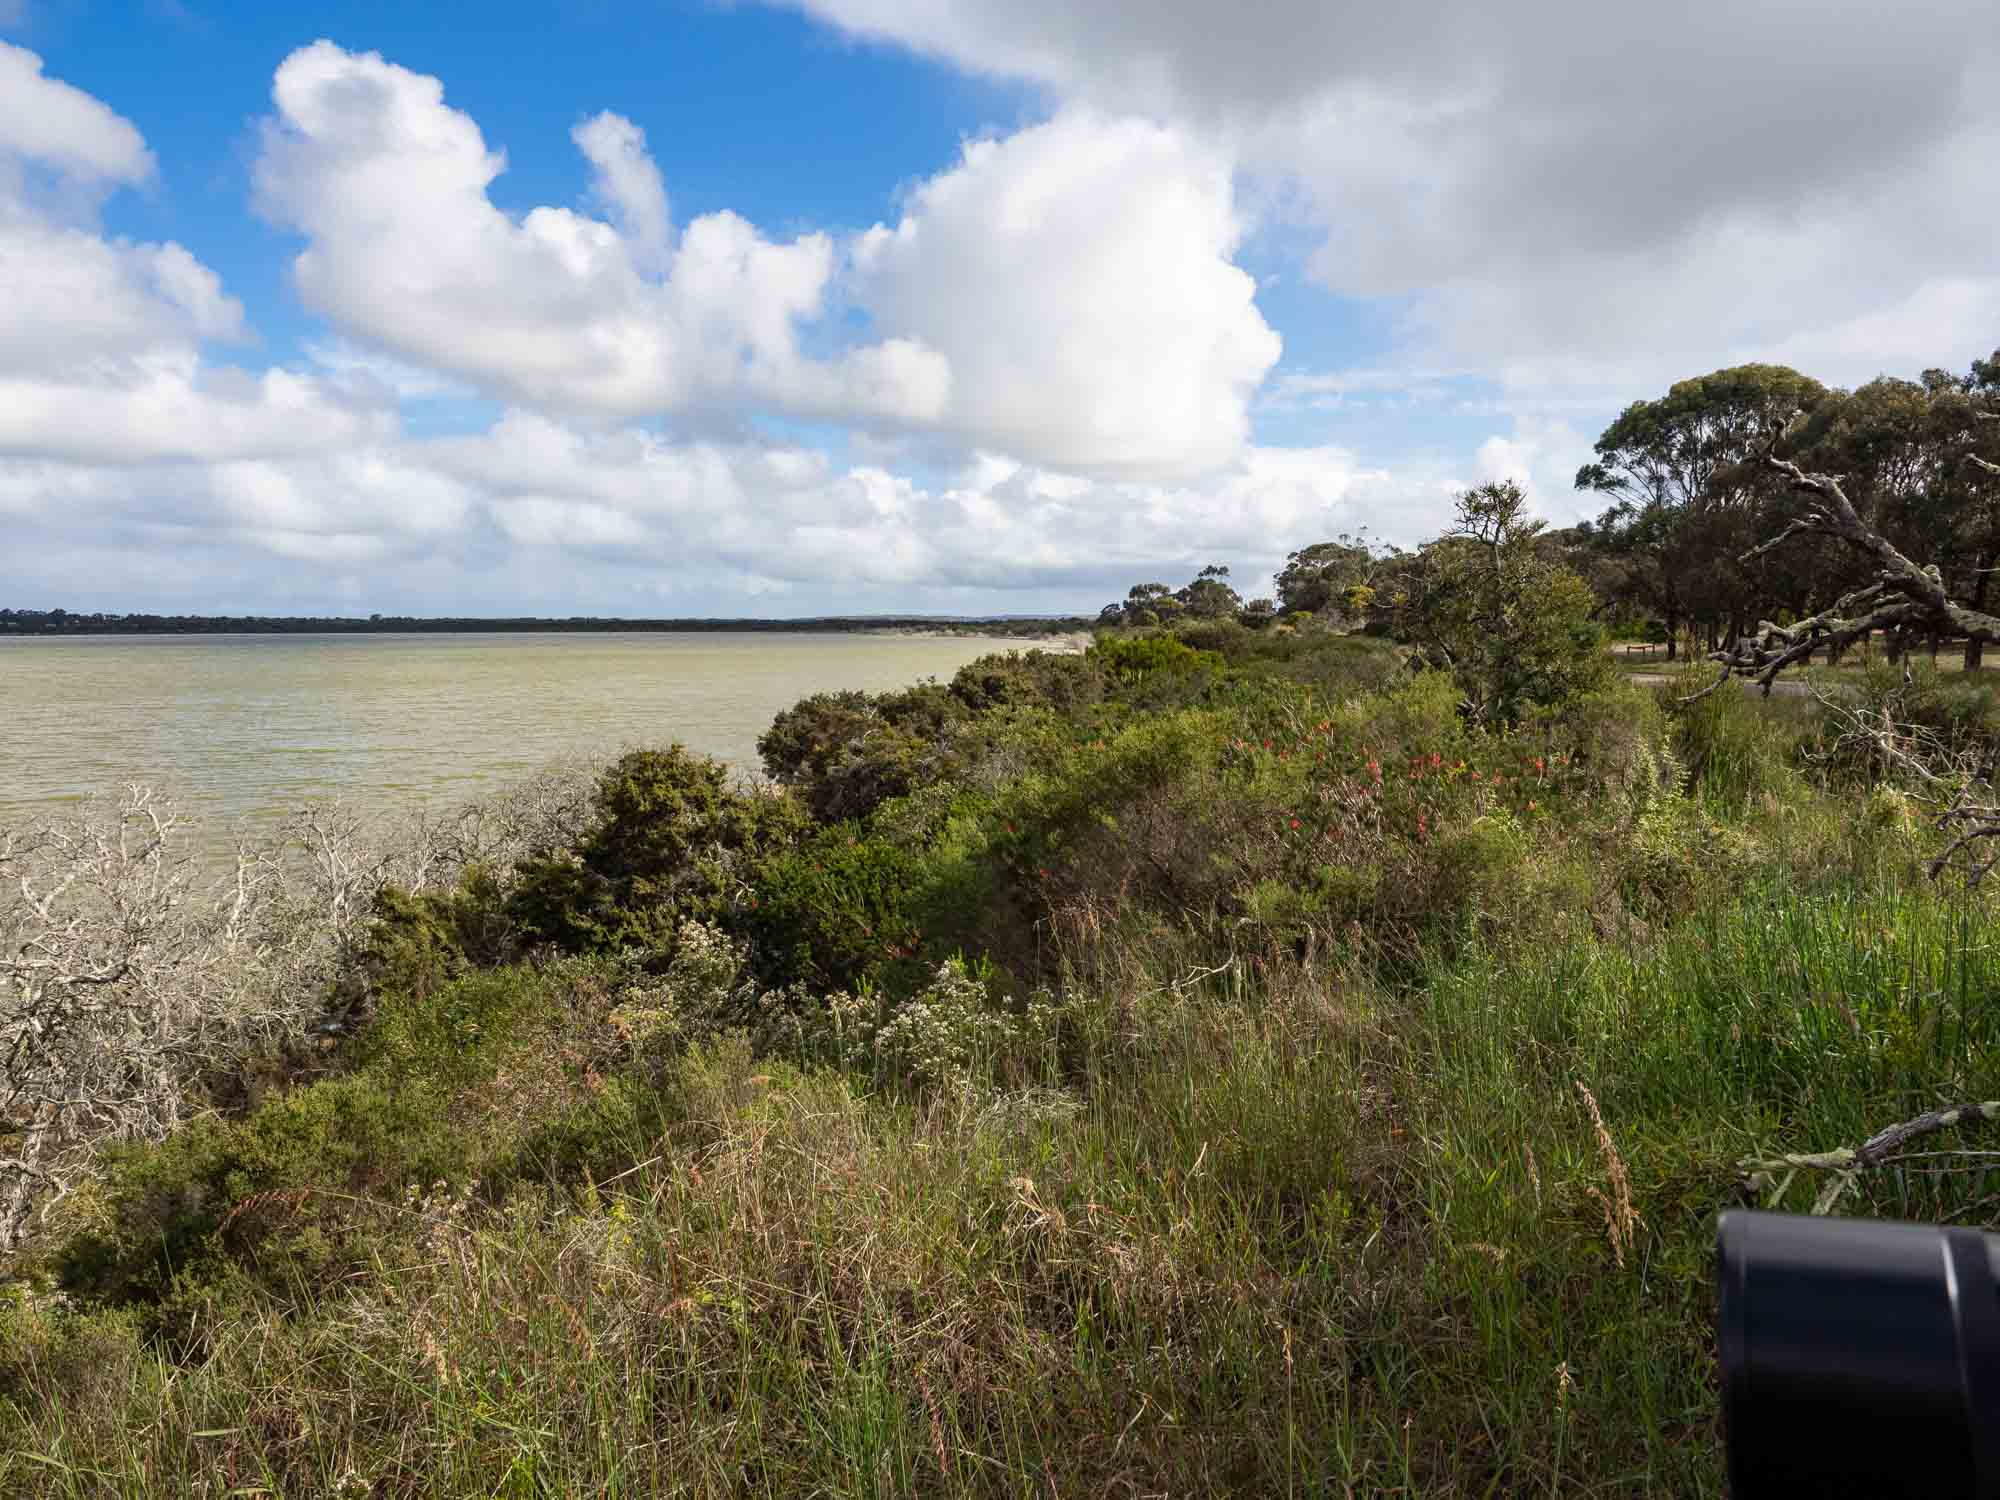 Yesterday, during a short break in the weather, we took a walk around the lakes of Esperance